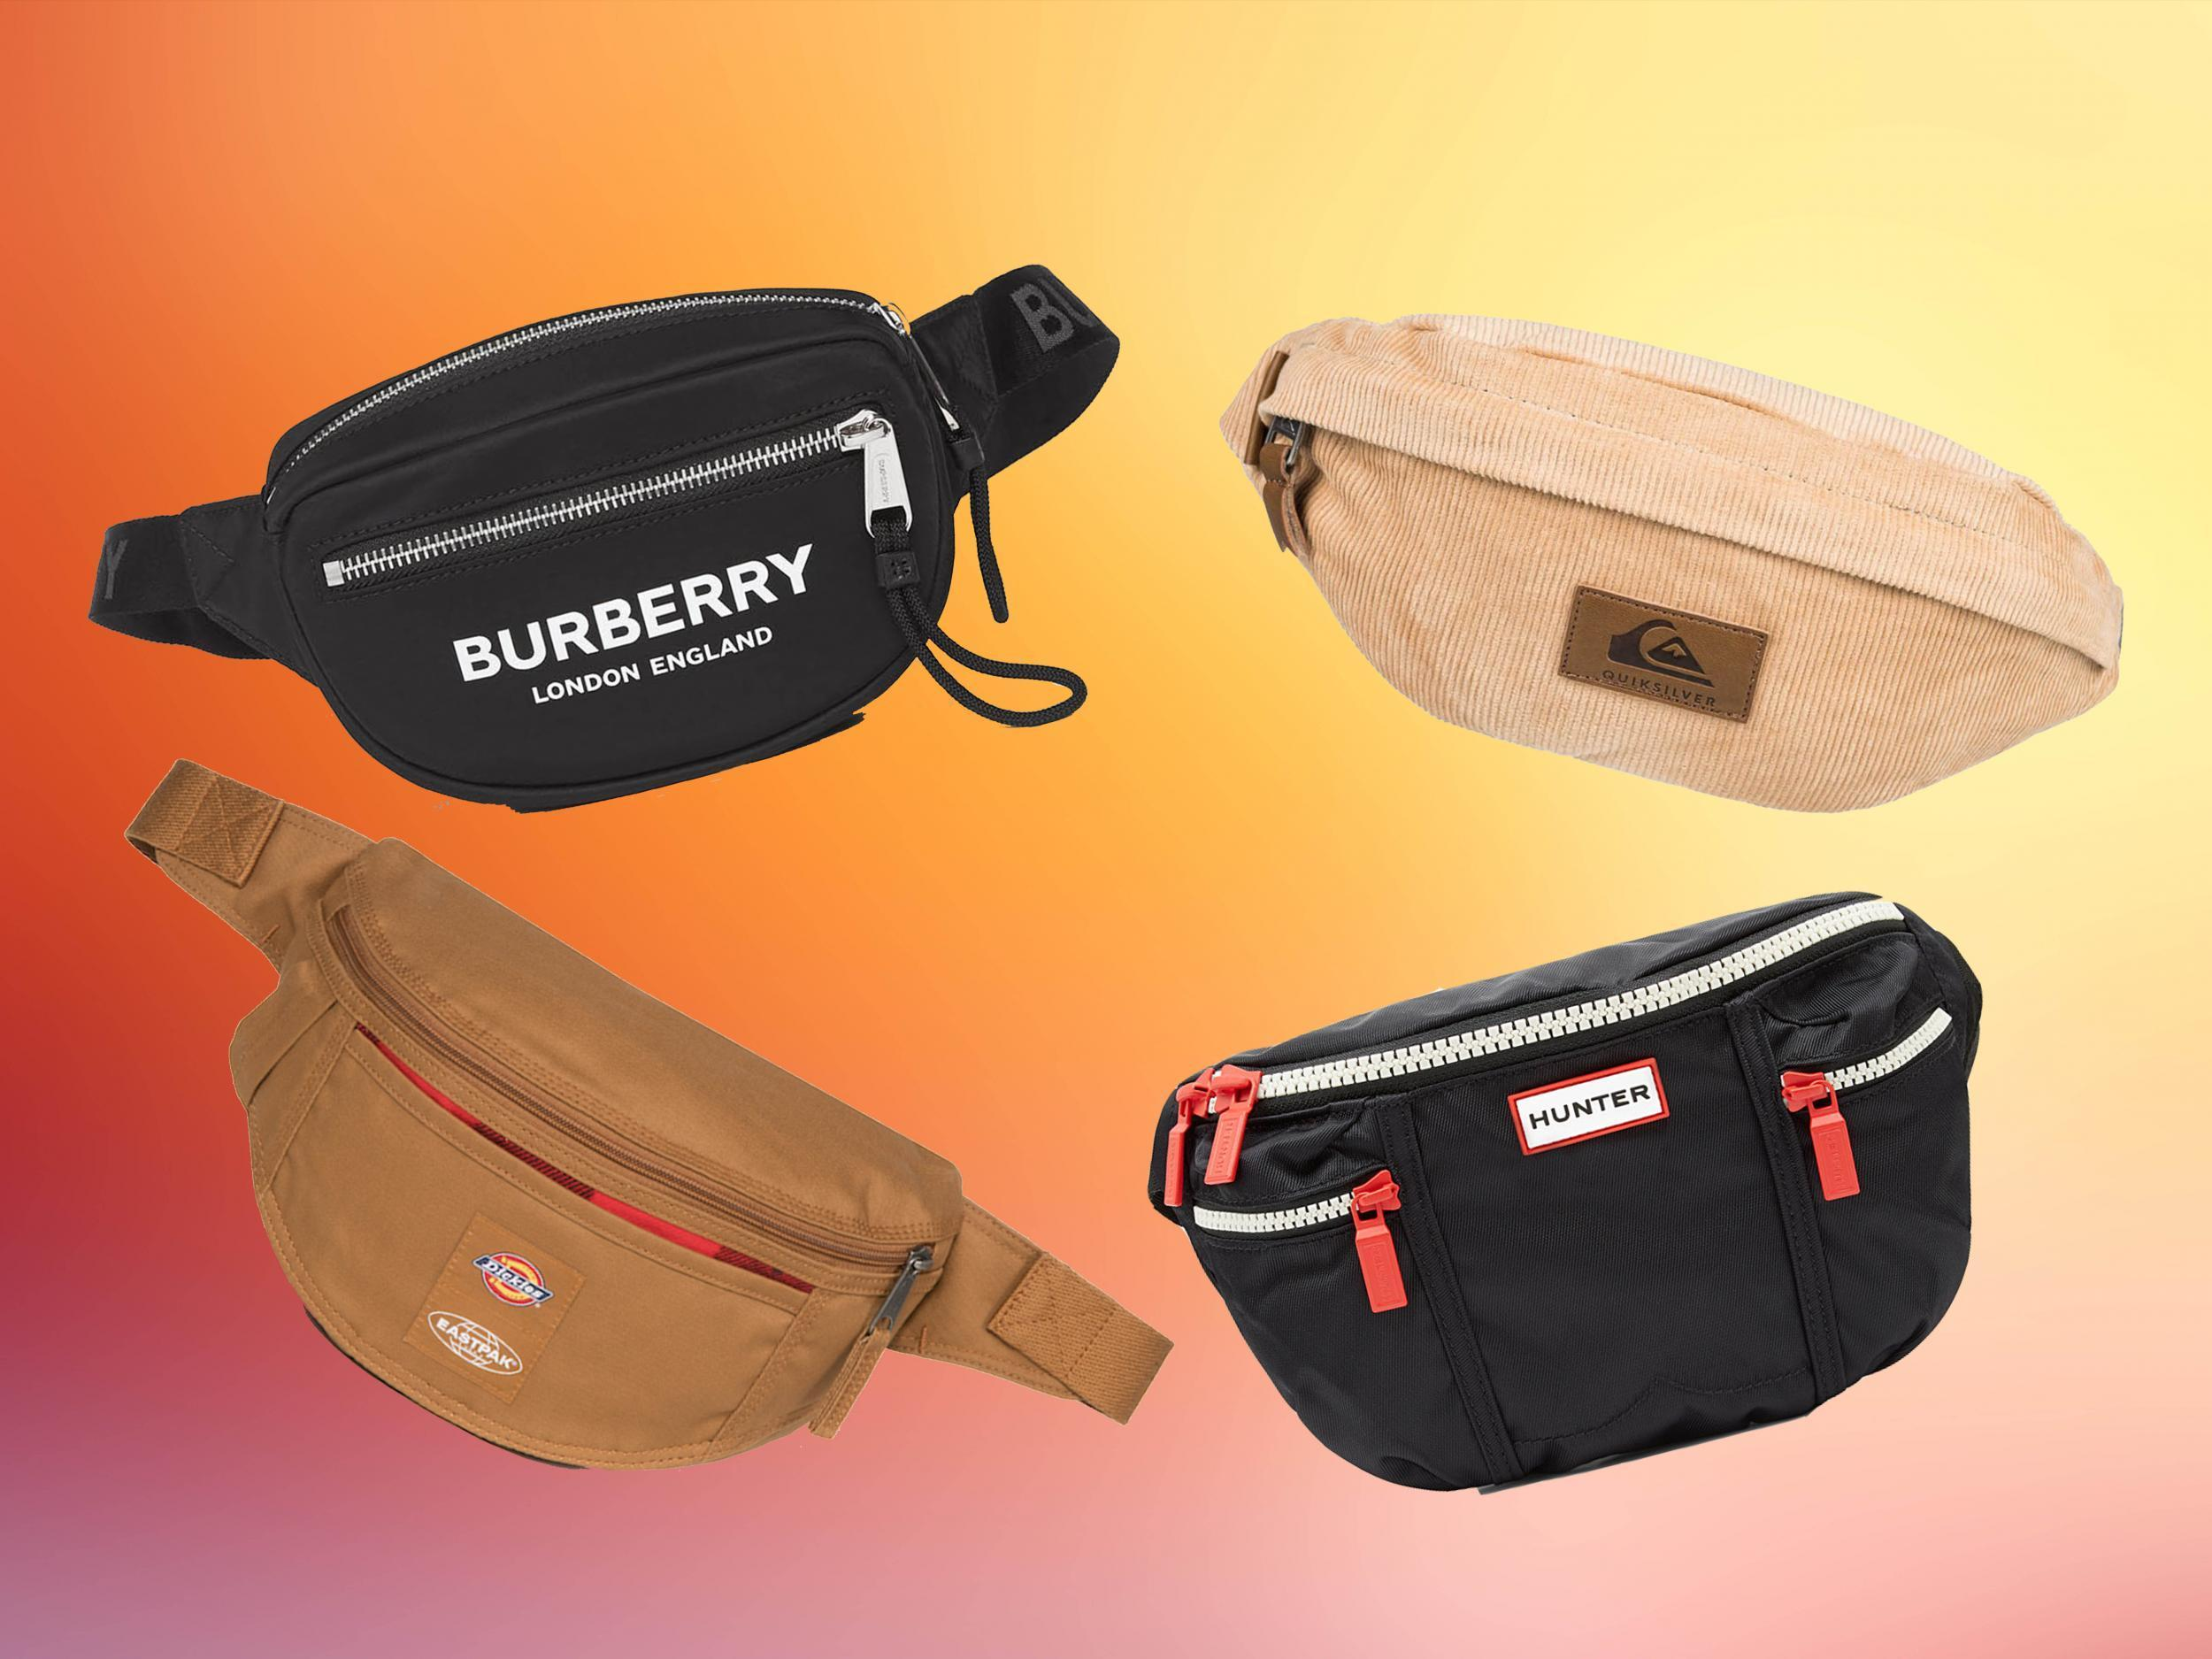 96eeeeea44d4 Best bum bag: Choose from carriers that are fit for festivals ...